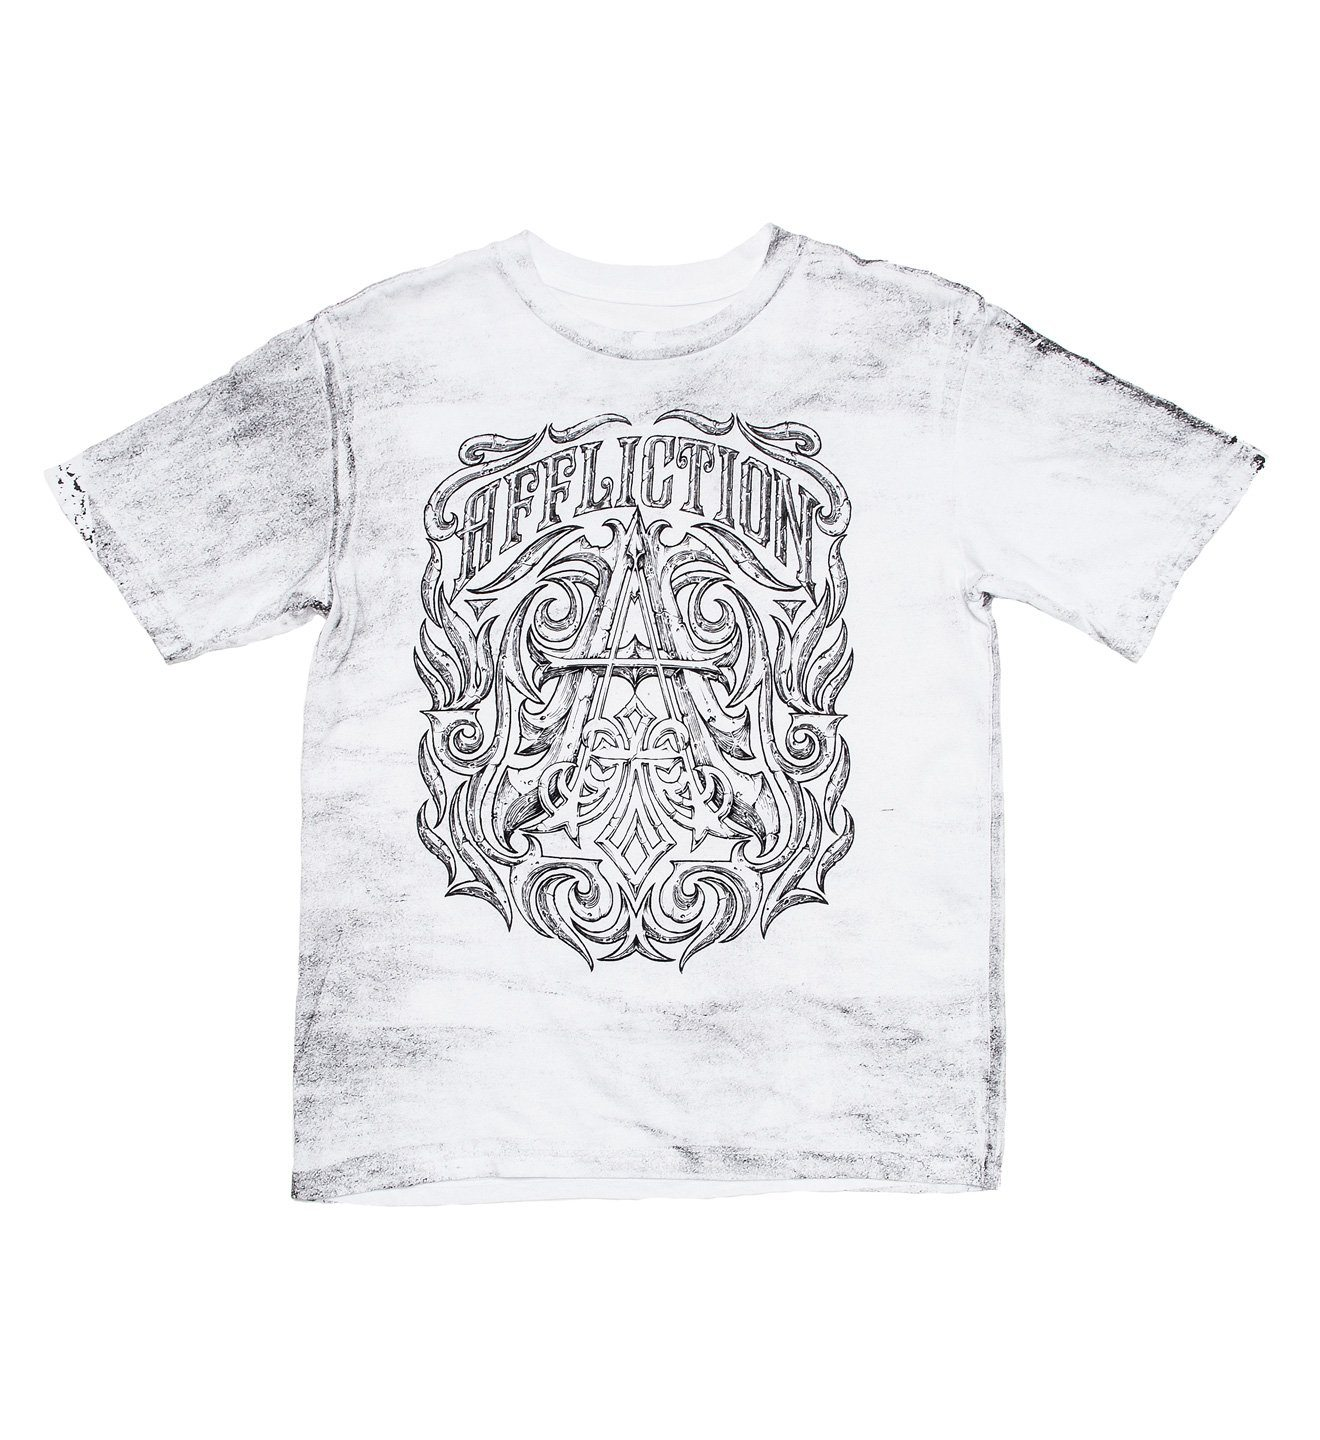 Causeway - Youth - Kids Short Sleeve Tees - Affliction Clothing